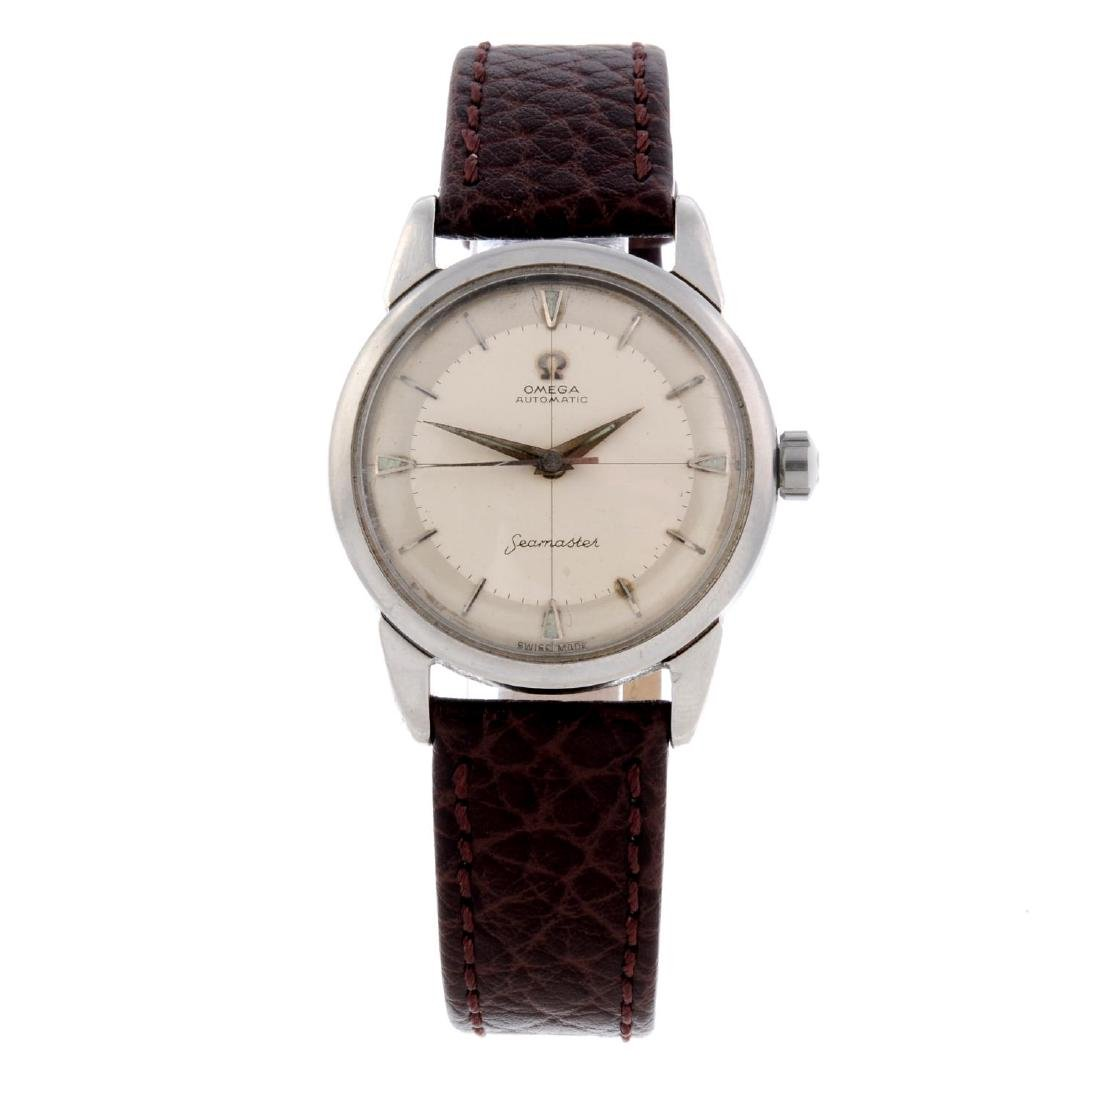 OMEGA - a gentleman's Seamaster wrist watch. Stainless